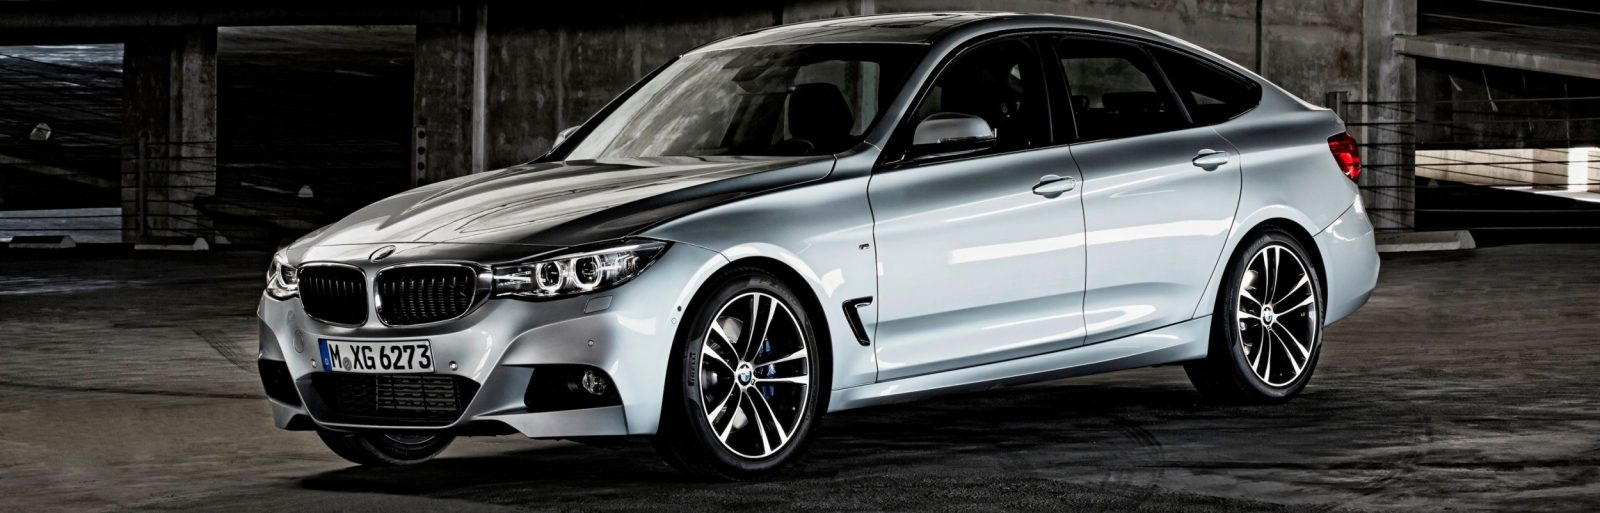 Best of Awards - 1000 miles at 100MPH - 2014 M Sport BMW 335i GT 74